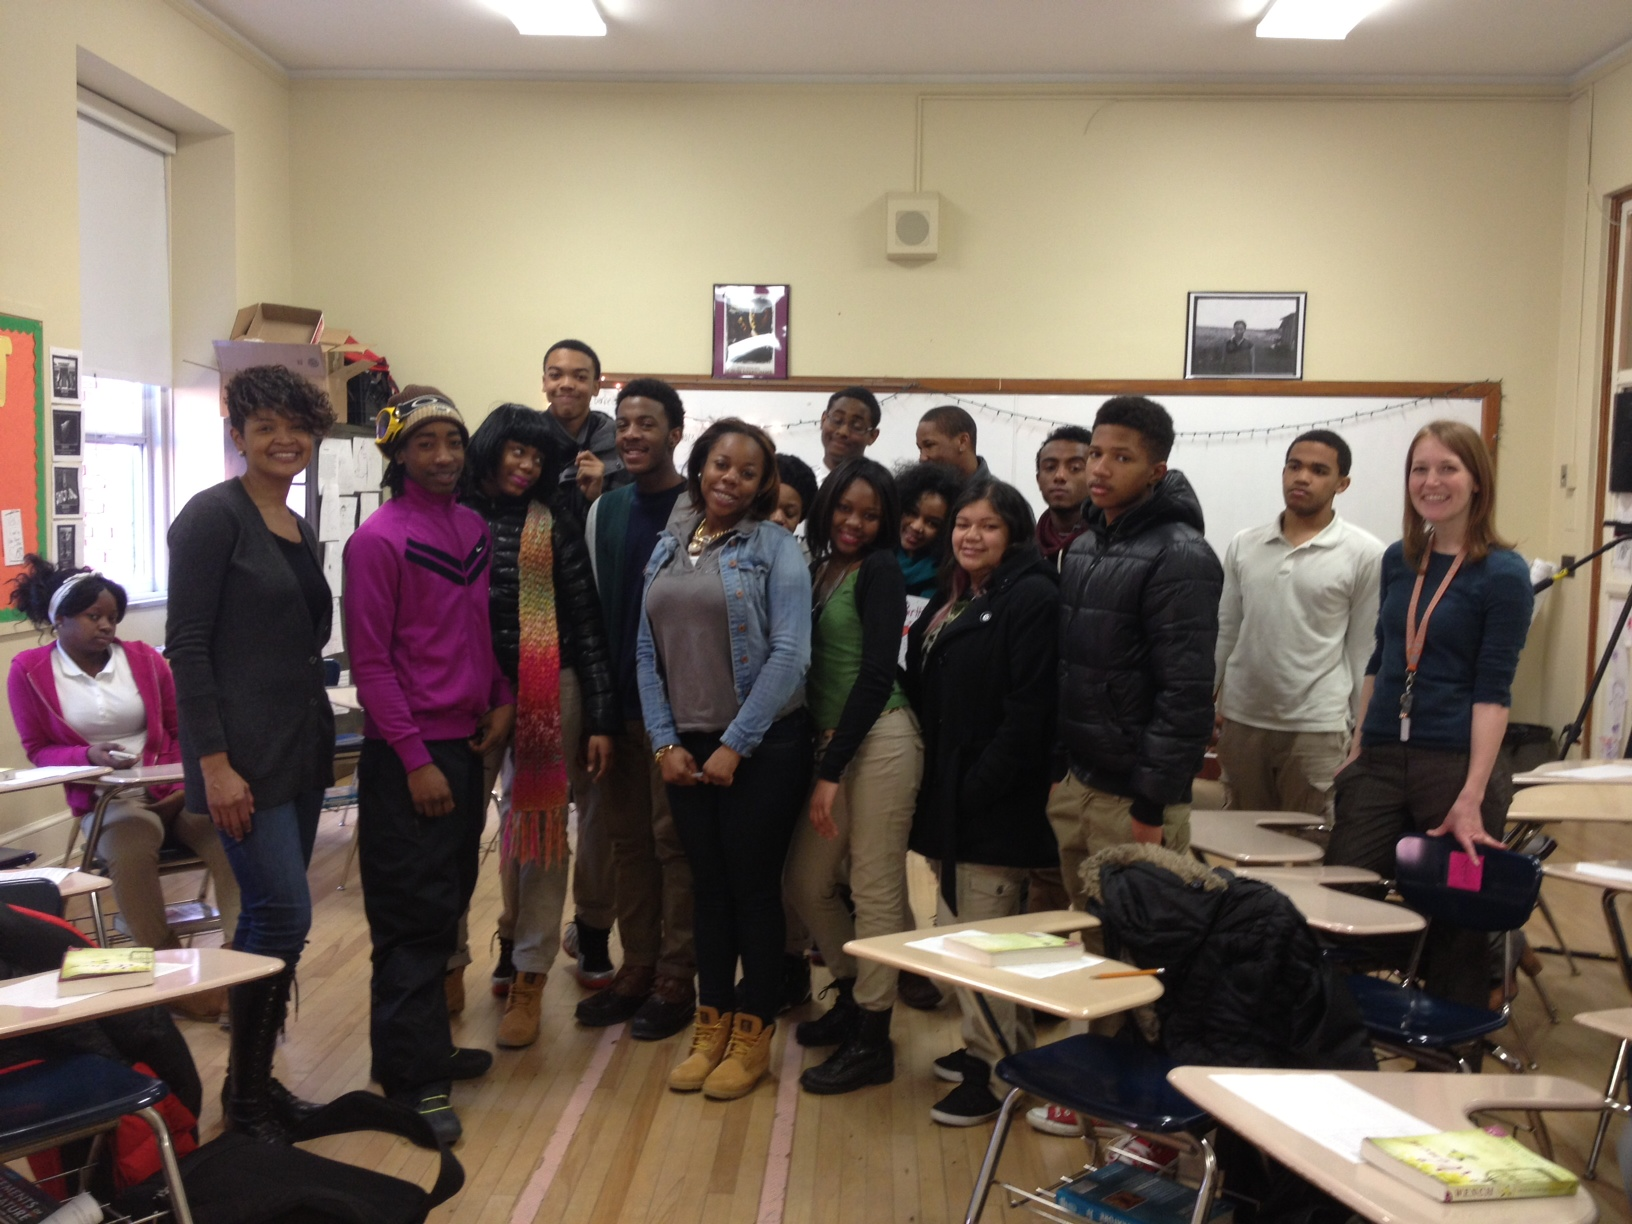 Dolen Perkins-Valdez (far left) poses with students following her visit to Coolidge High School.